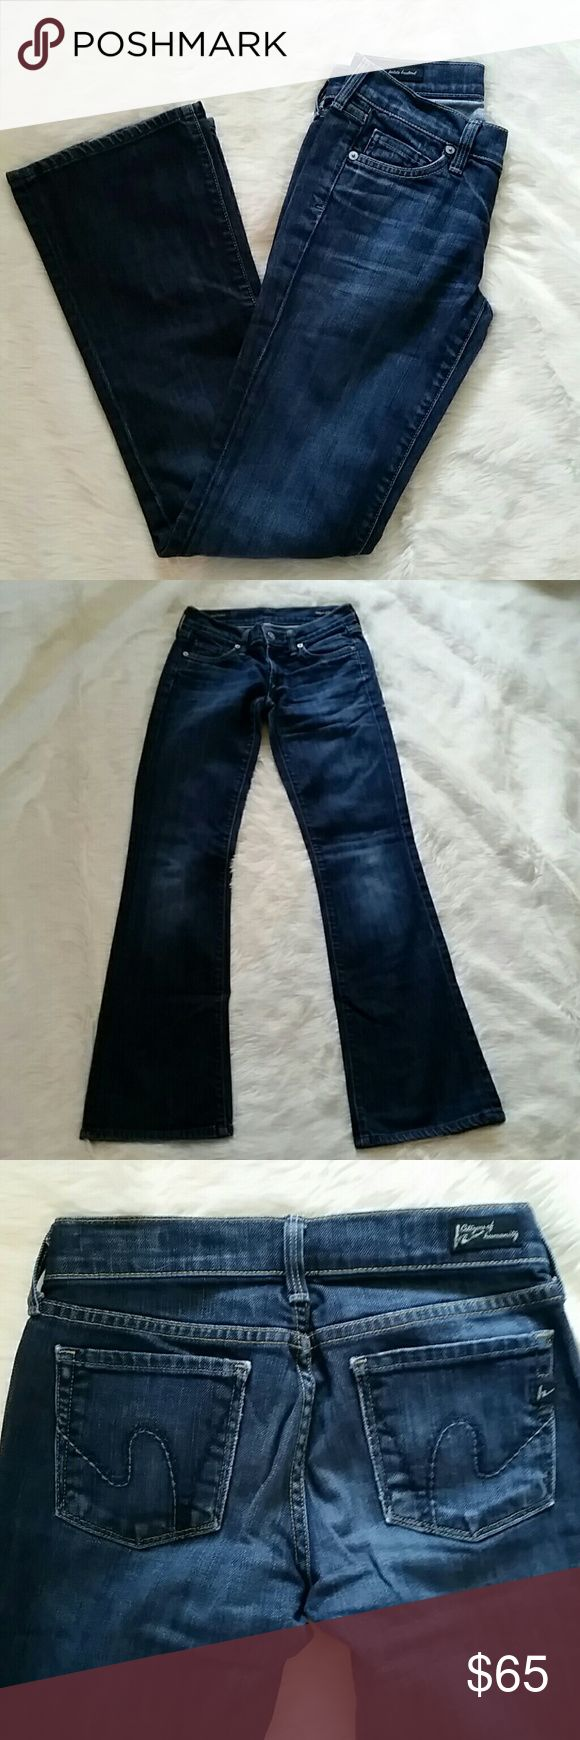 Citizens of Humanity Dita Petite Bootcut Super cute Citizens of Humanity Dita Petite Bootcut jeans.  A little wear on the back bottoms of the legs (pic 4) but otherwise excellent condition.  The inseam is 29 inches with a rise of 7.5 inches Citizens of Humanity Jeans Boot Cut